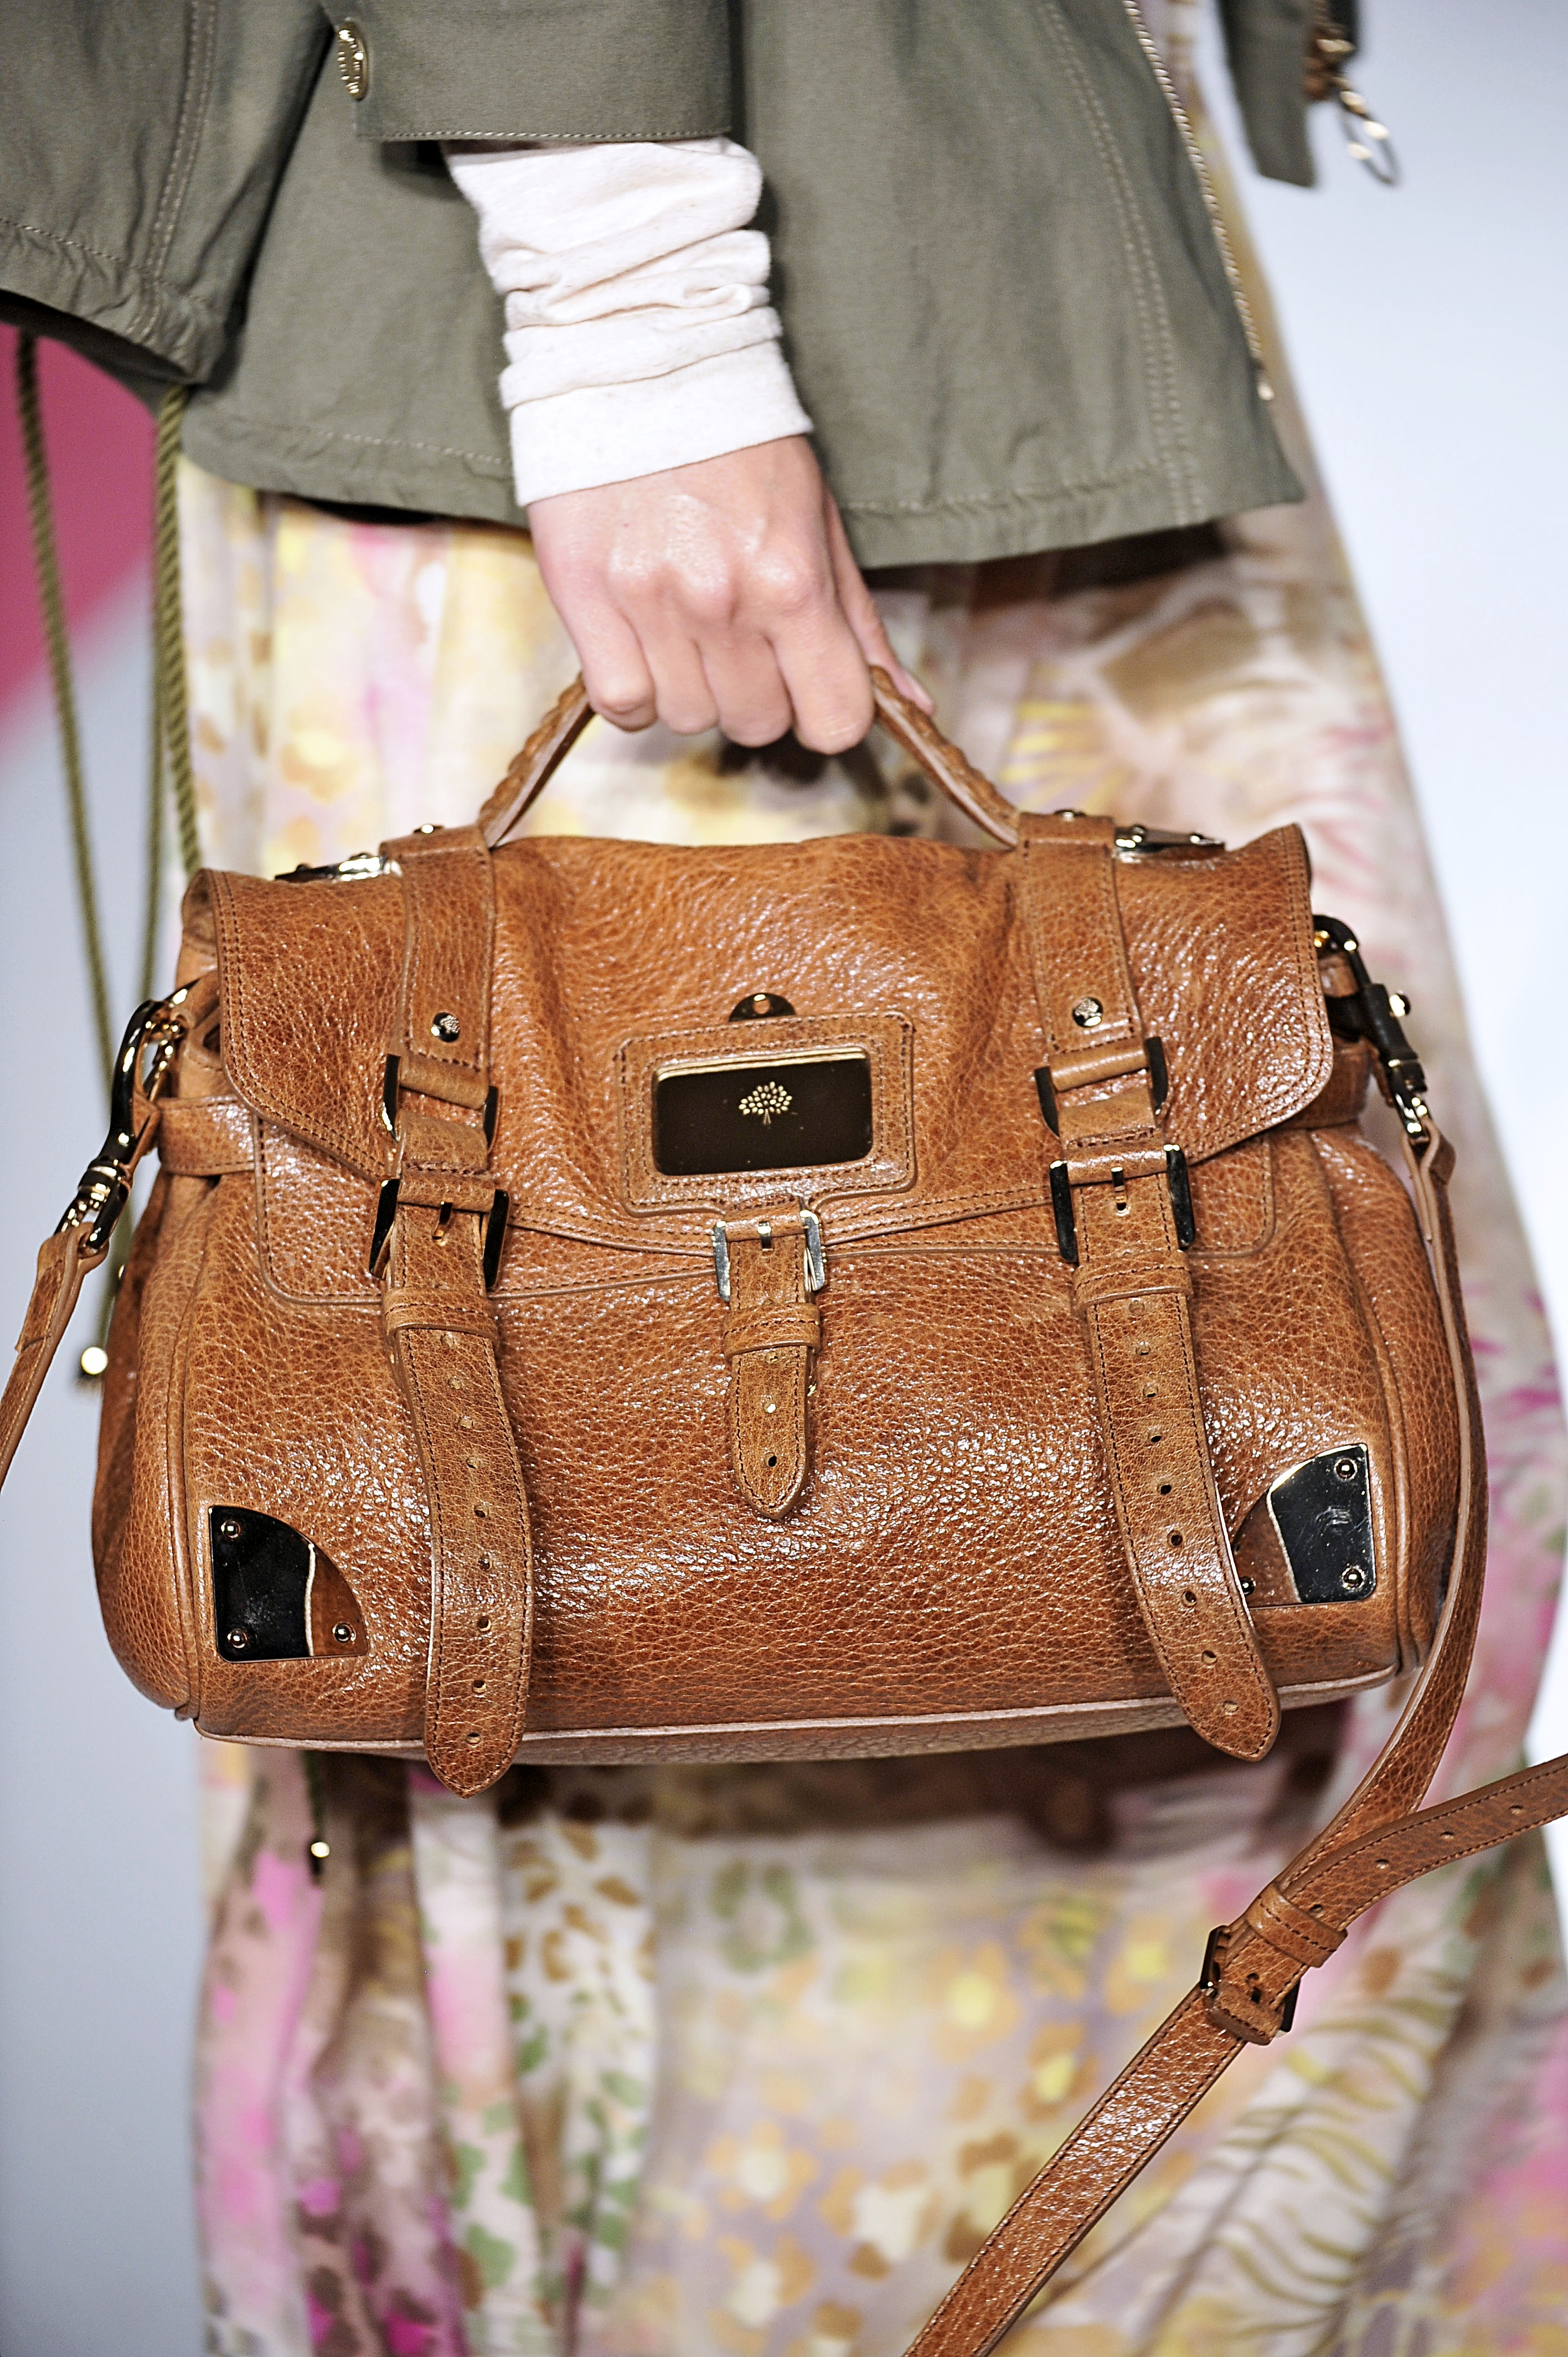 Mulberry: The Rise and Rise of an Icon